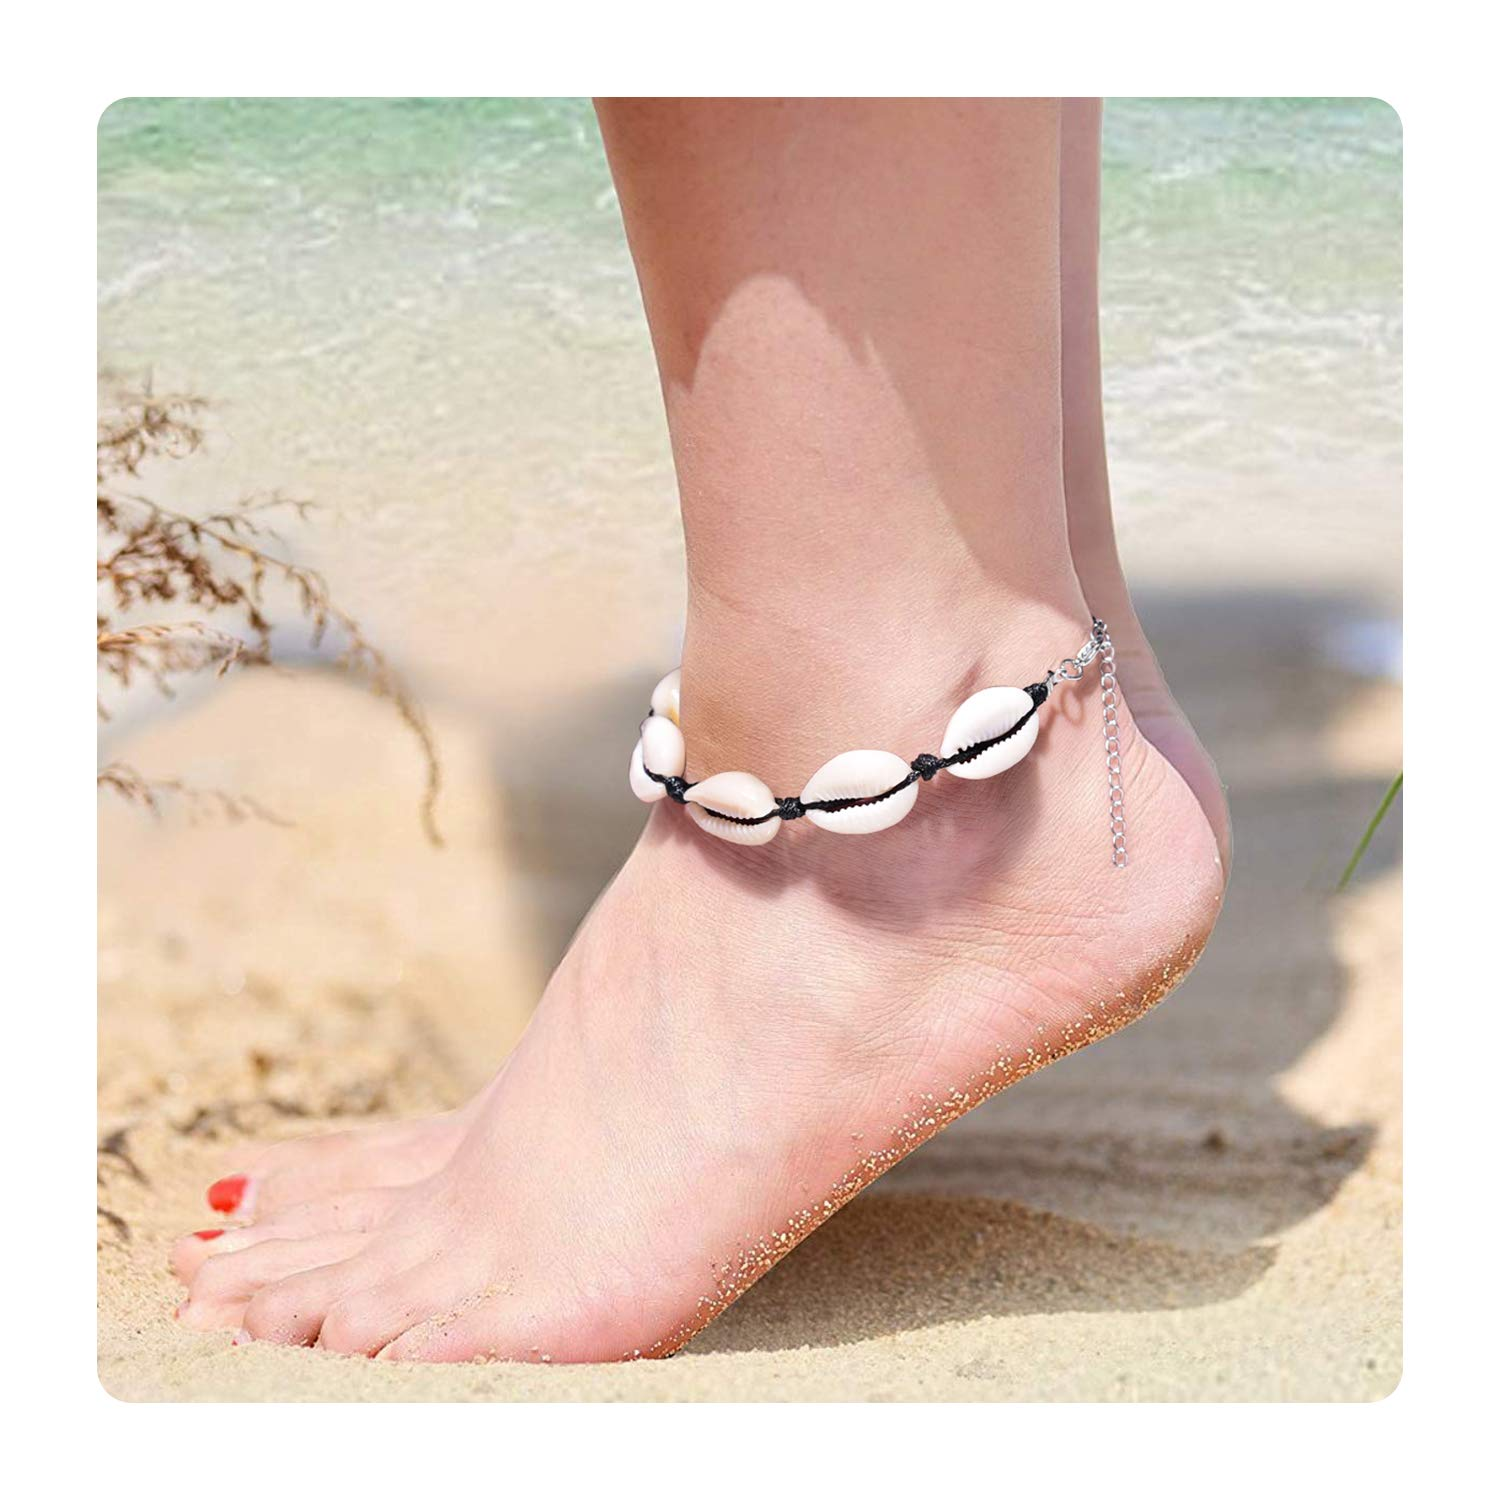 Esberry Boho Anklets with Beach Beaded Shell Anklet Charm Wax Rope Infinite Foot Chains Handmade Jewelry for Women and Girls (A.Shell) B07G164GNS_US